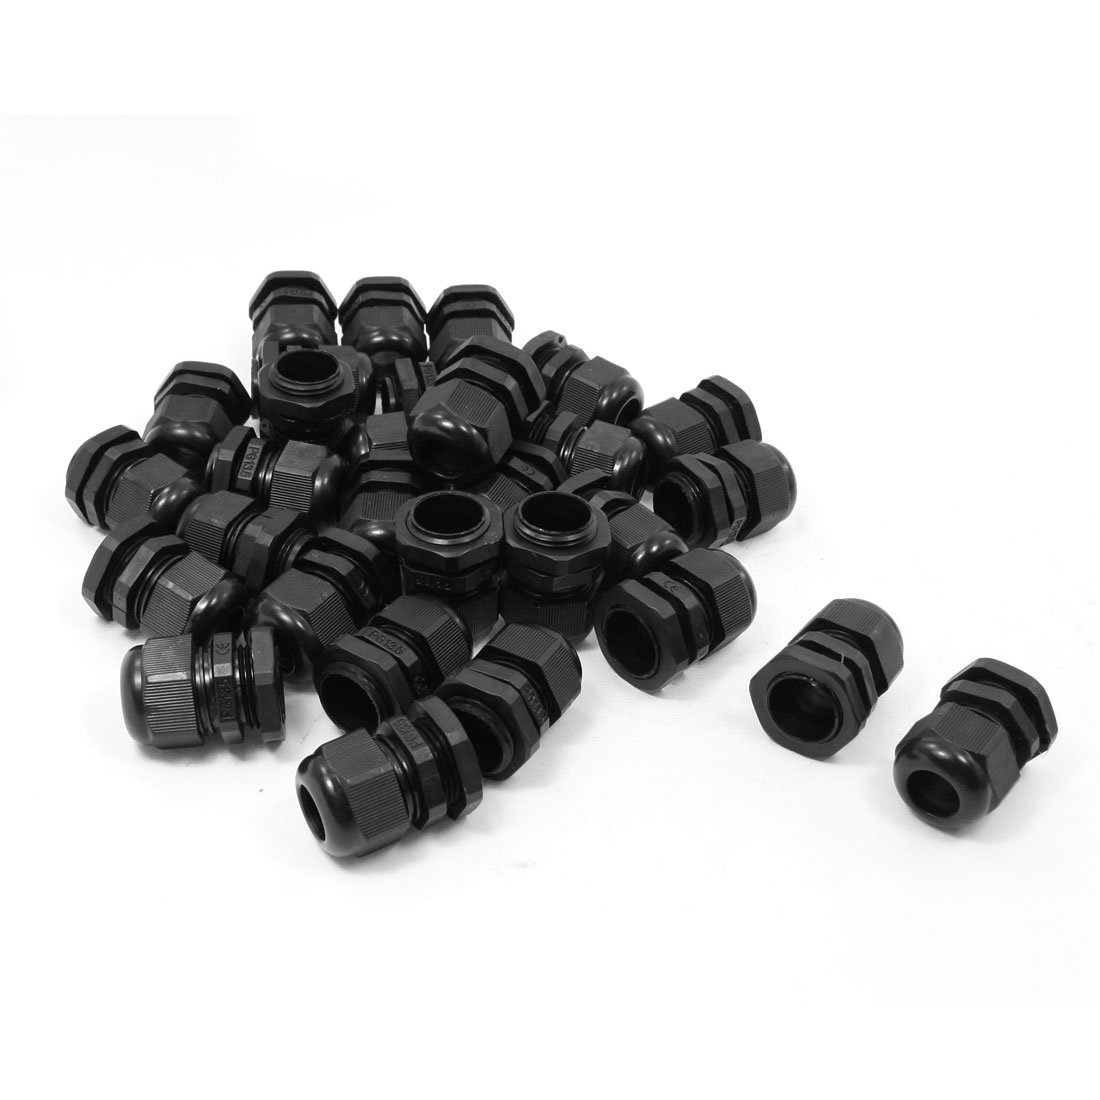 uxcell 30 Pcs PG13.5 Black Plastic 6mm to 12mm Dia Cable Glands Fastening Connector